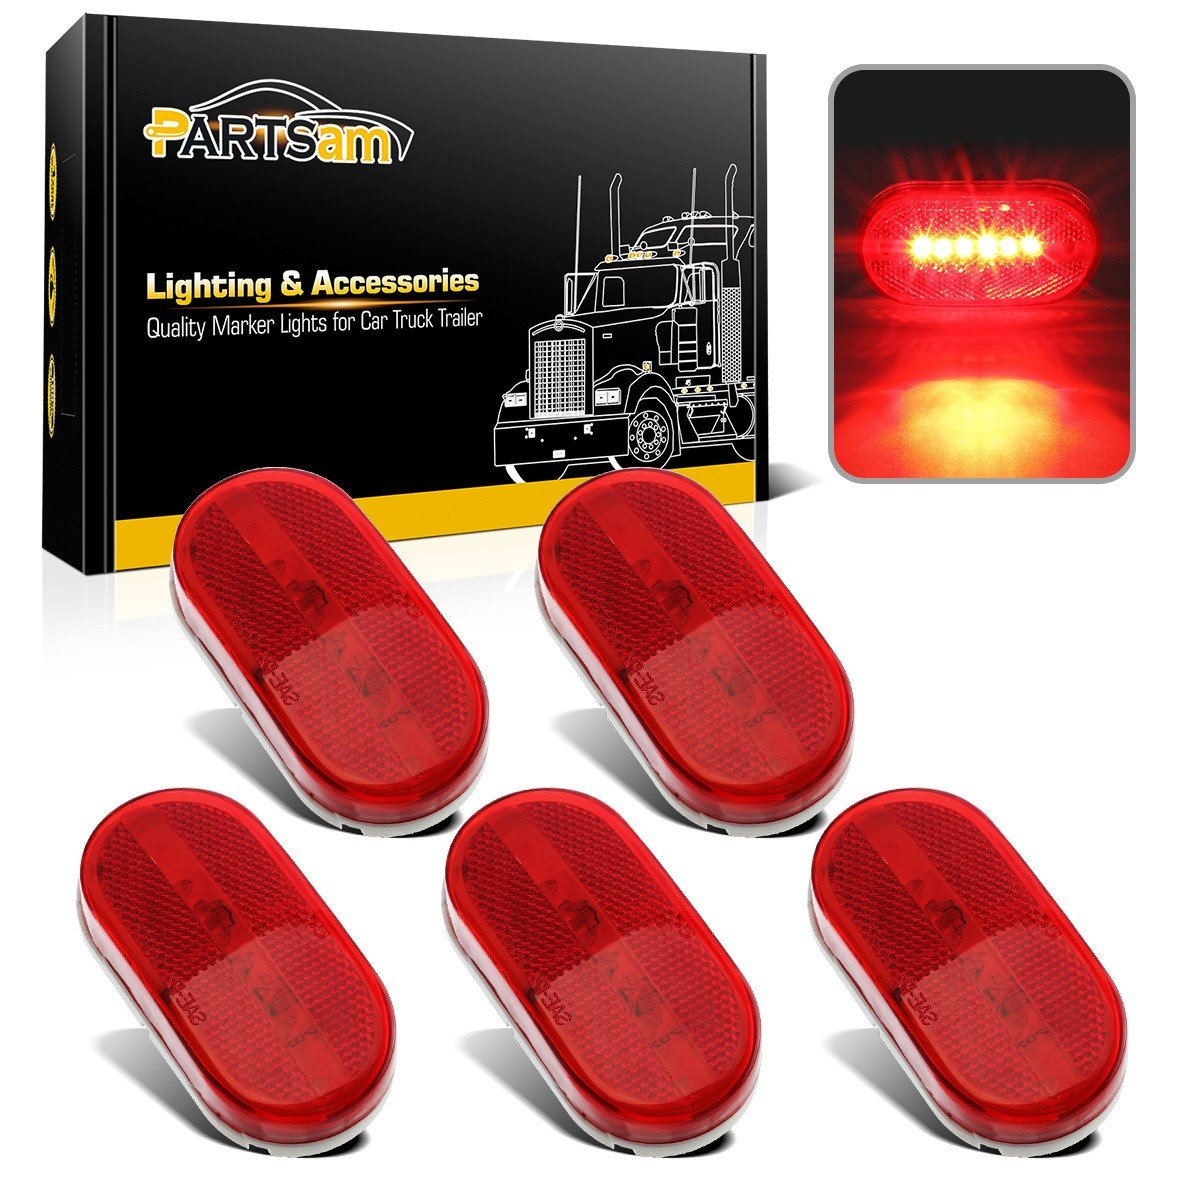 rv clearance lights amazon com  partsam (5) 12v oval oblong red side marker clearance lamp w white base